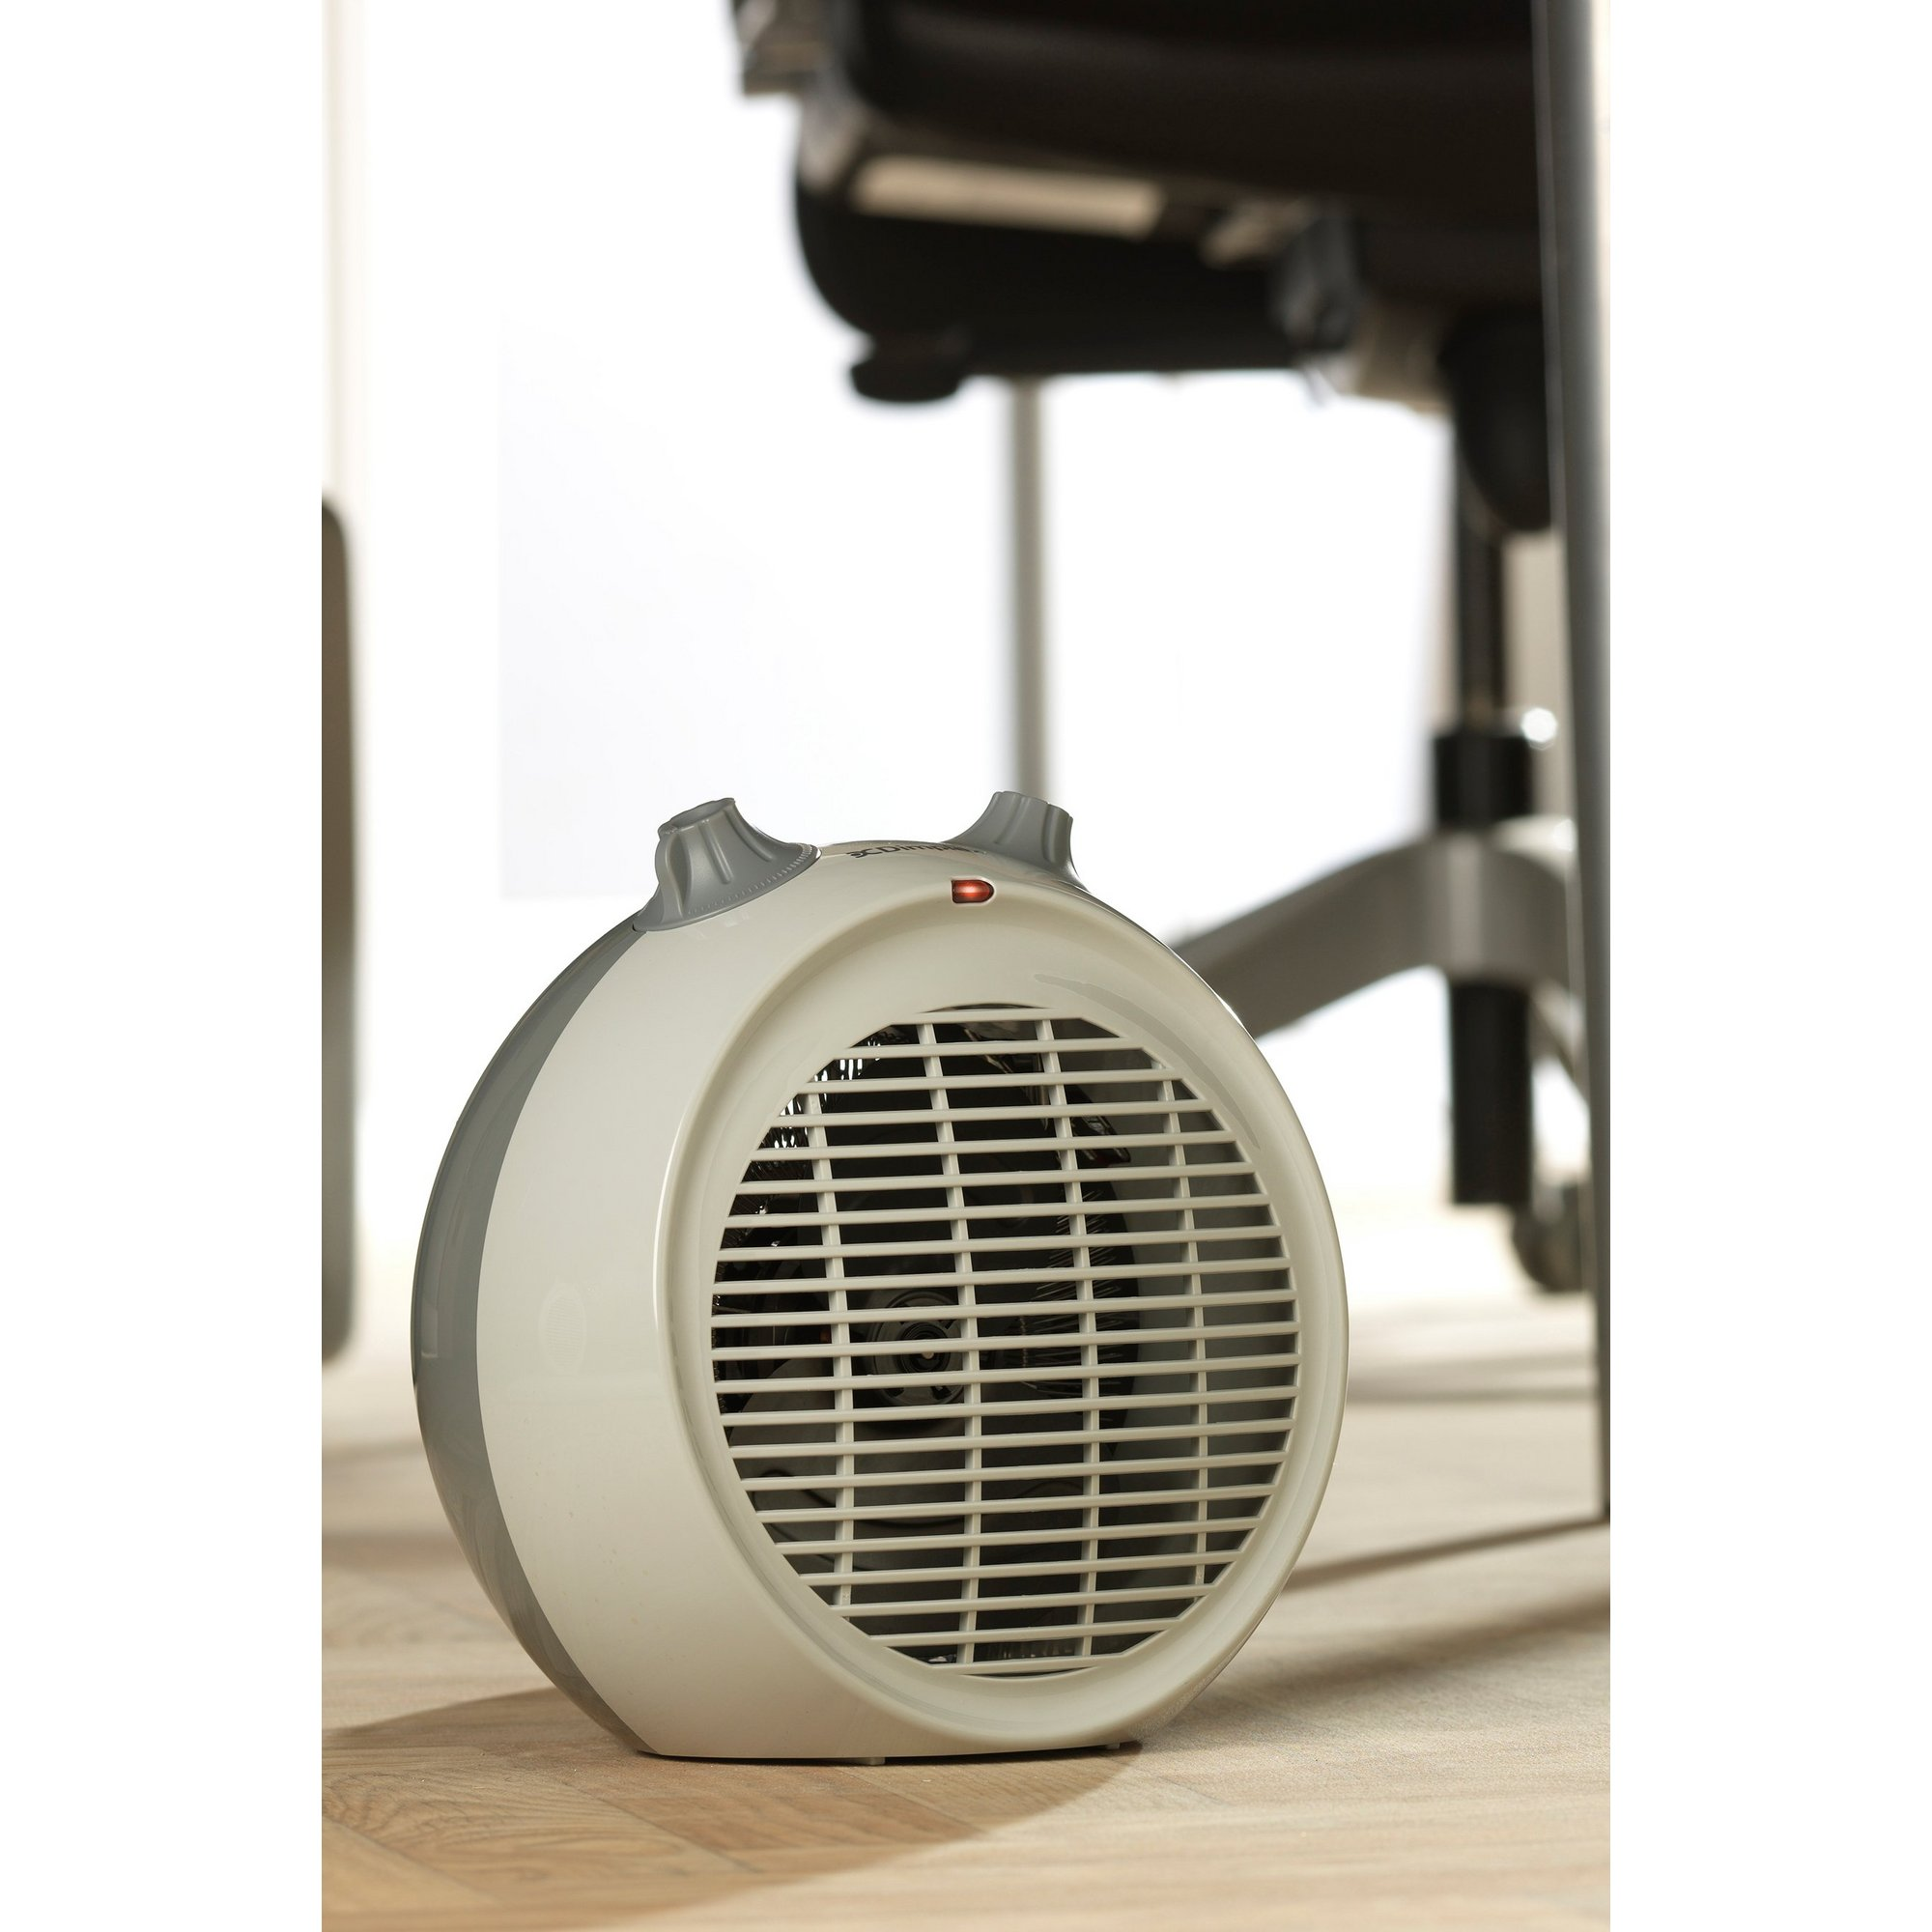 Image of Dimplex 3000W Upright Fan Heater with Thermostat